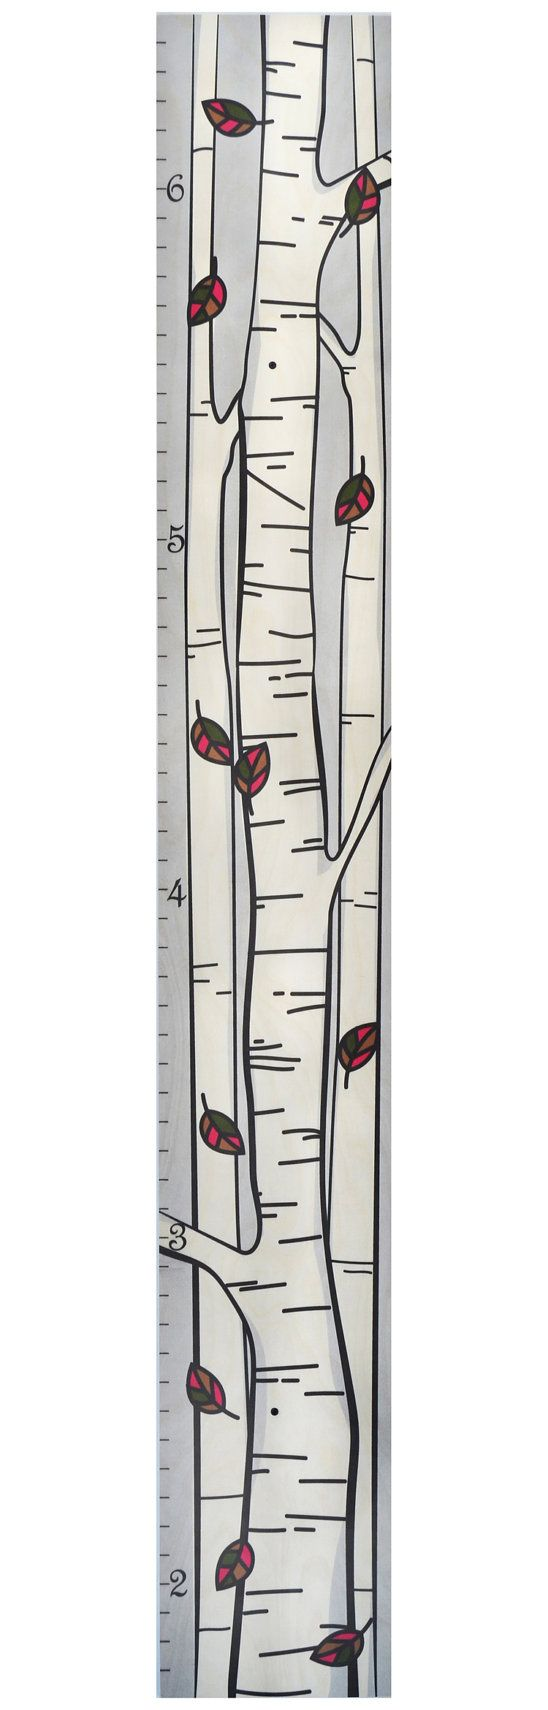 These rulers fit seamlessly into family decor. Used often, your ruler growth chart is sure to become a meaningful piece of family history!